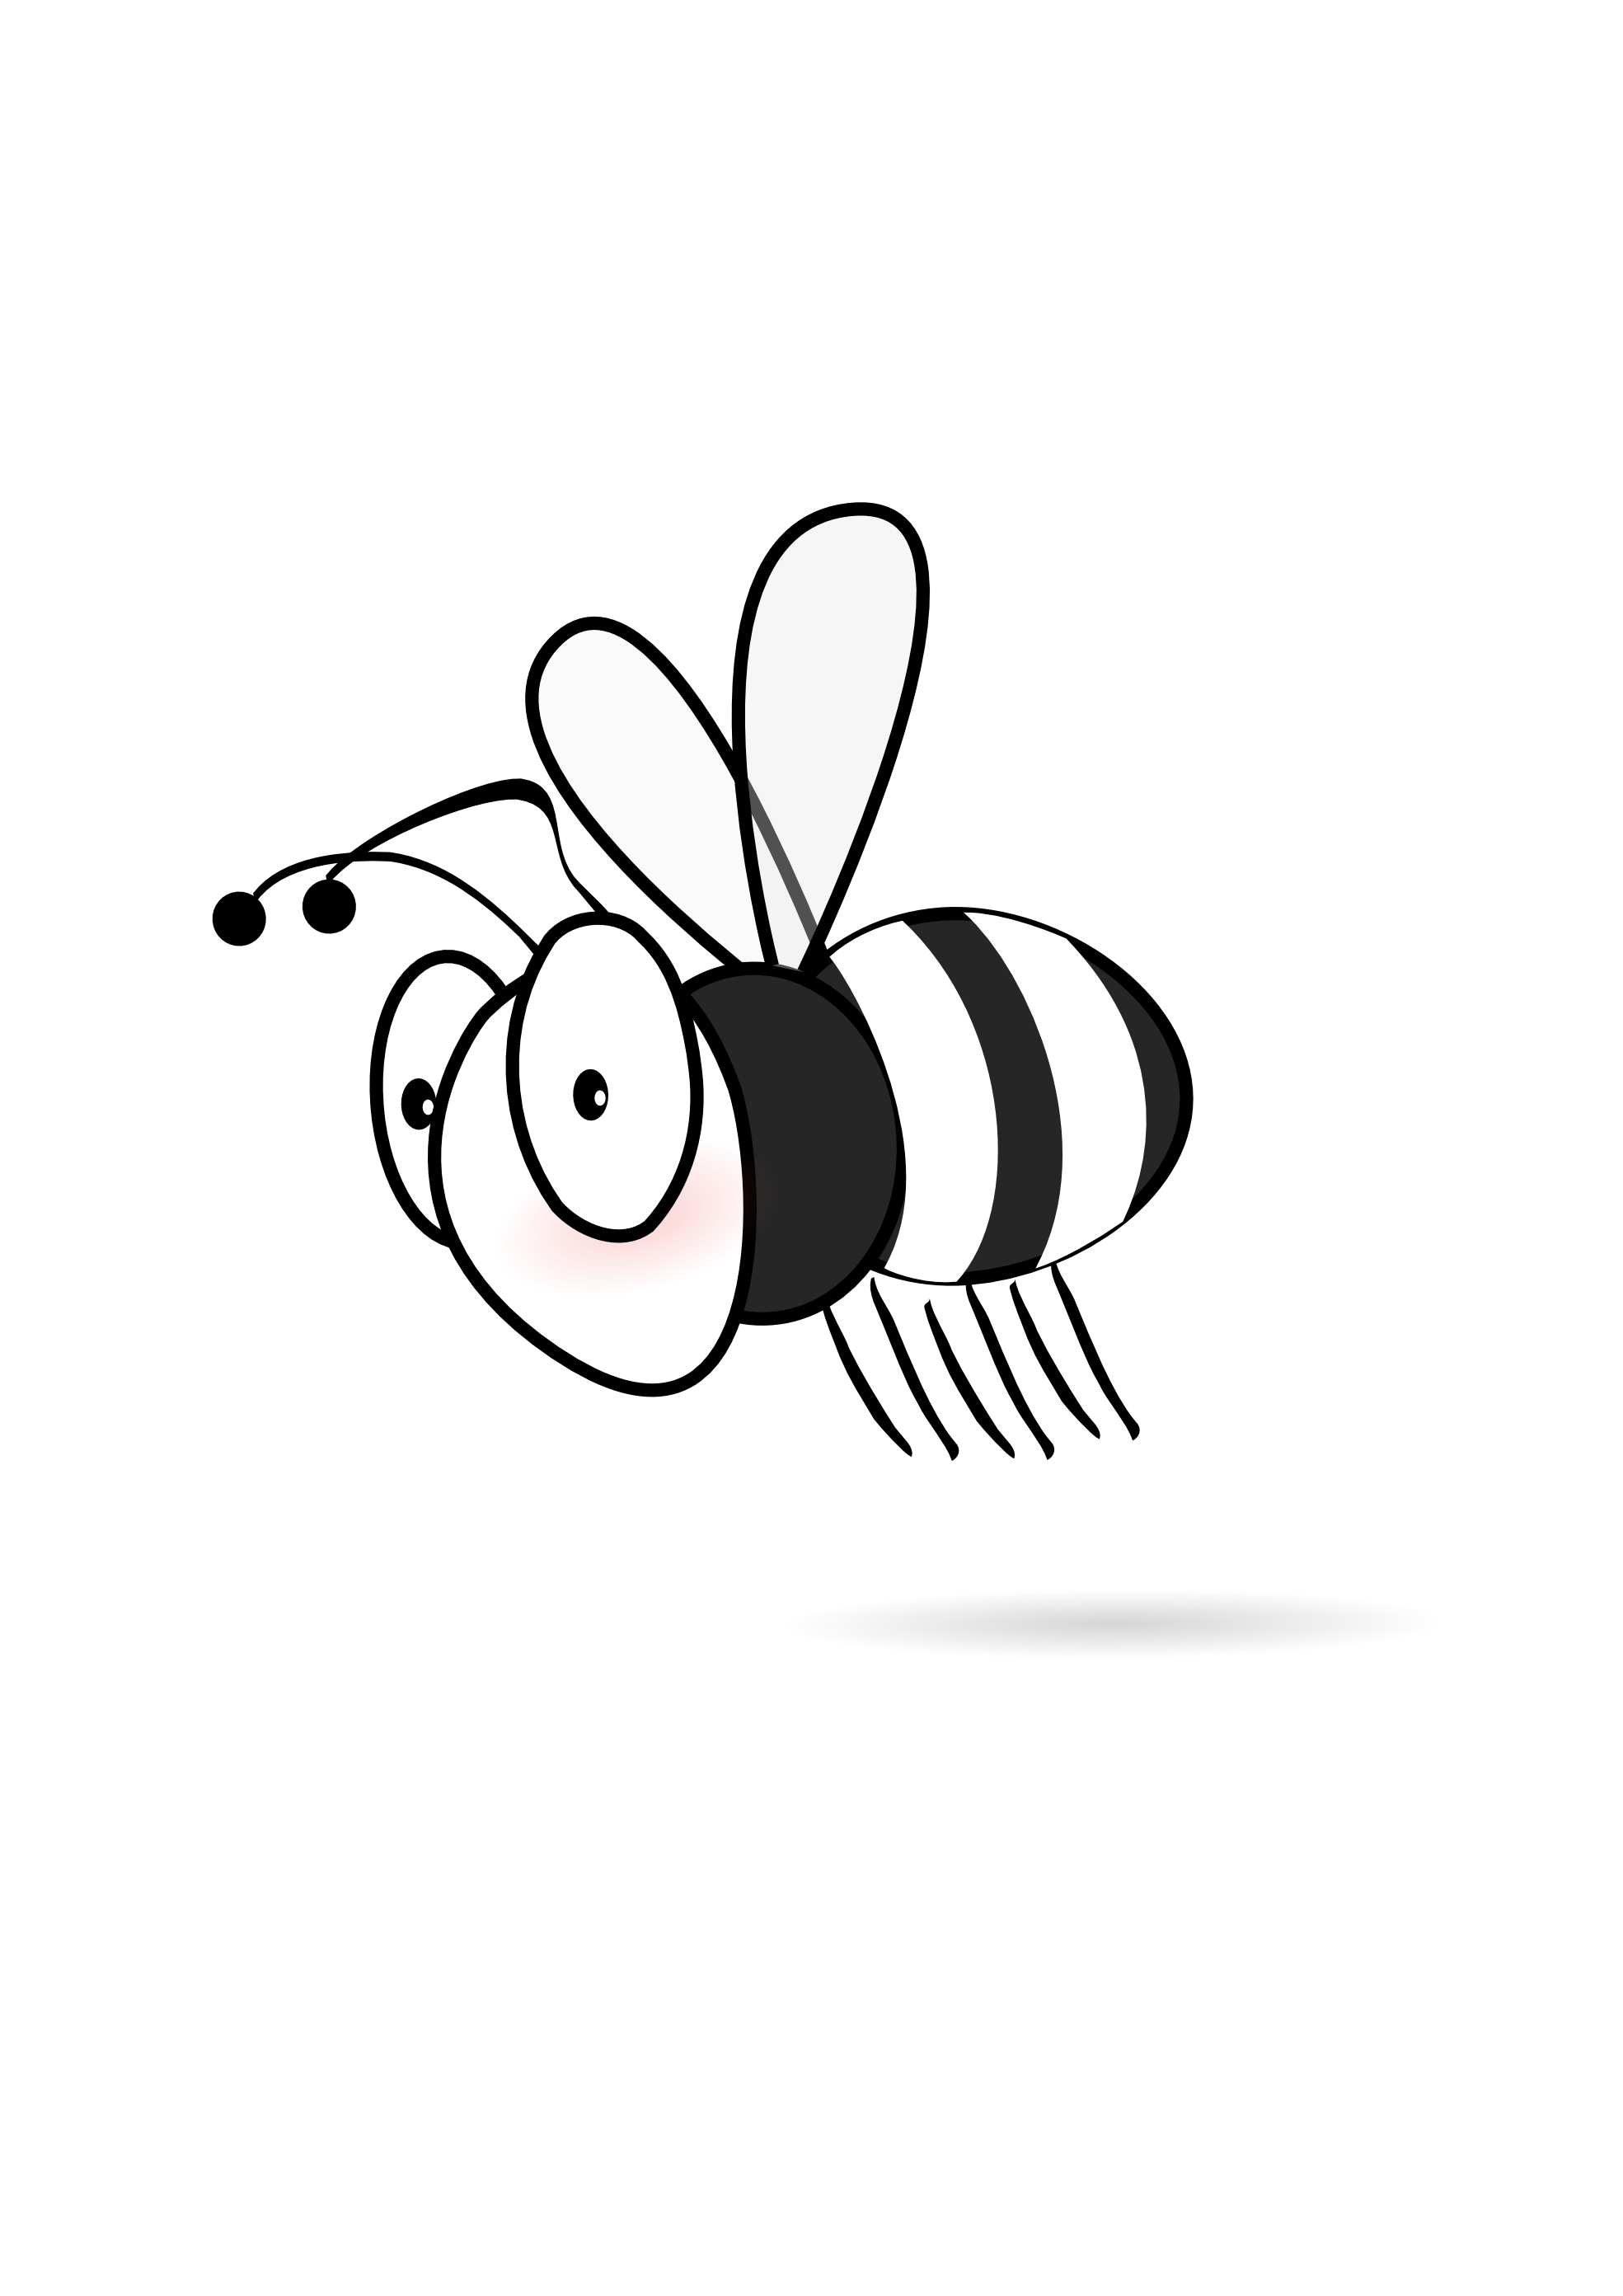 Bees clipart halloween. Bee black and white